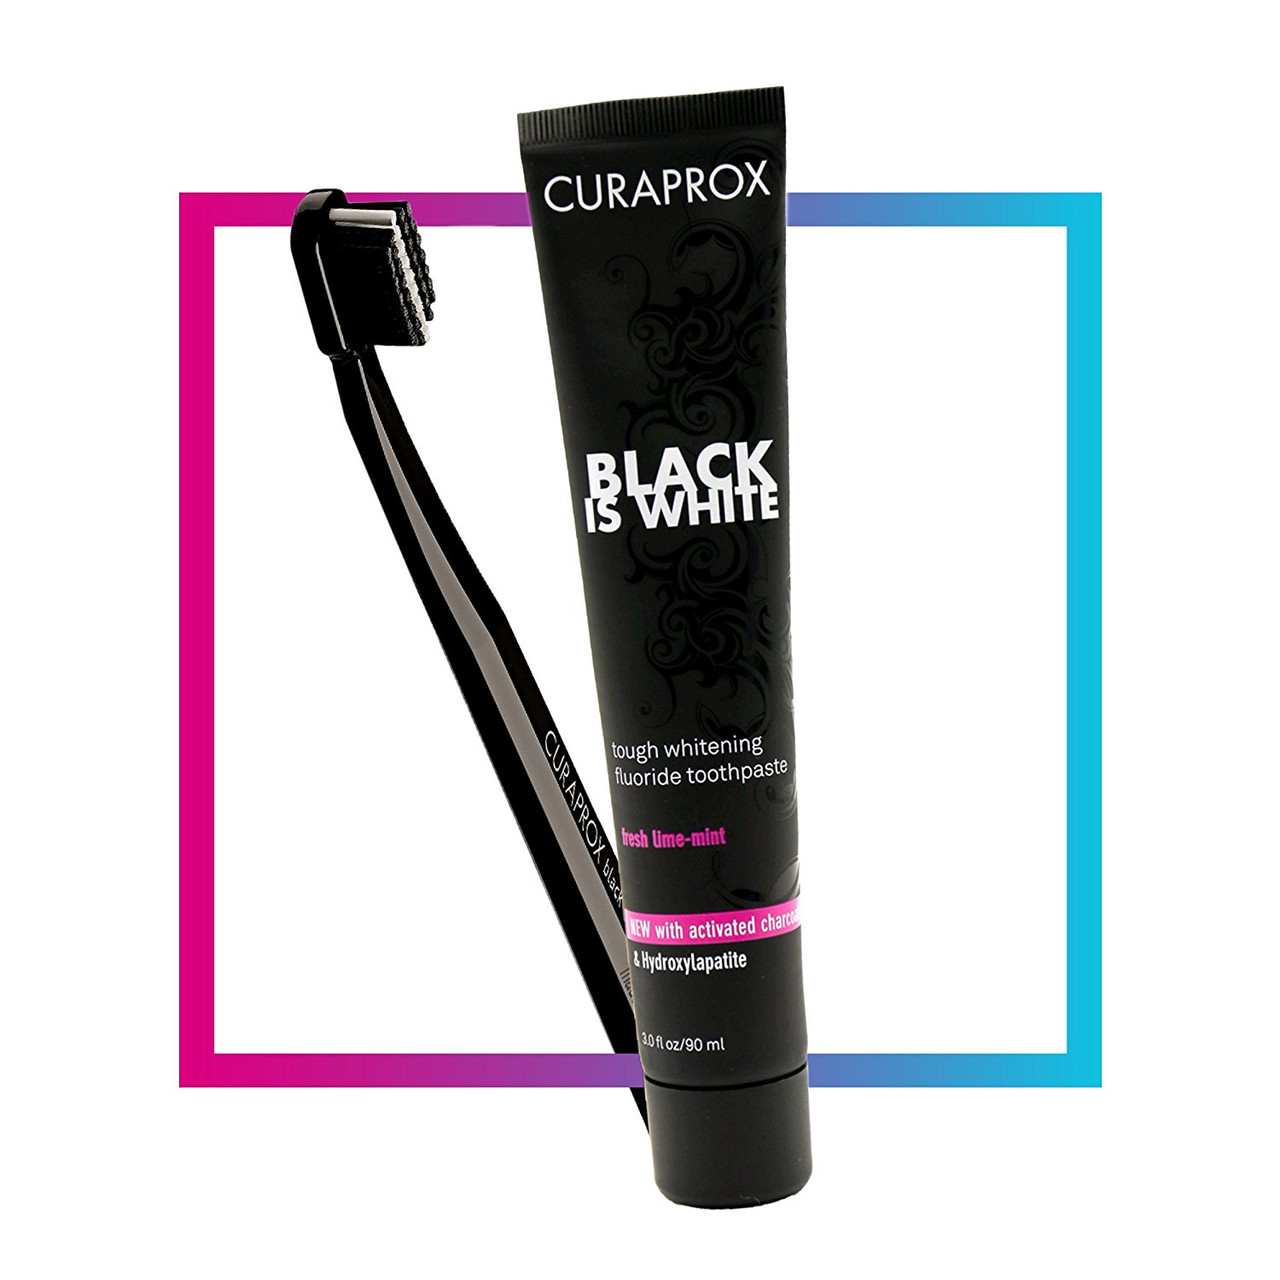 Black Is White 90ml + Toothbrush Ultra Soft, Curaprox Black Is White Toothpaste & Toothbrush by Curaprox  ENAMEL FRIENDLY: Black is White Toothpaste works to give you a healthy white smile and double protection against tooth decay, while protecting your enamel and gum tissue as a main priority